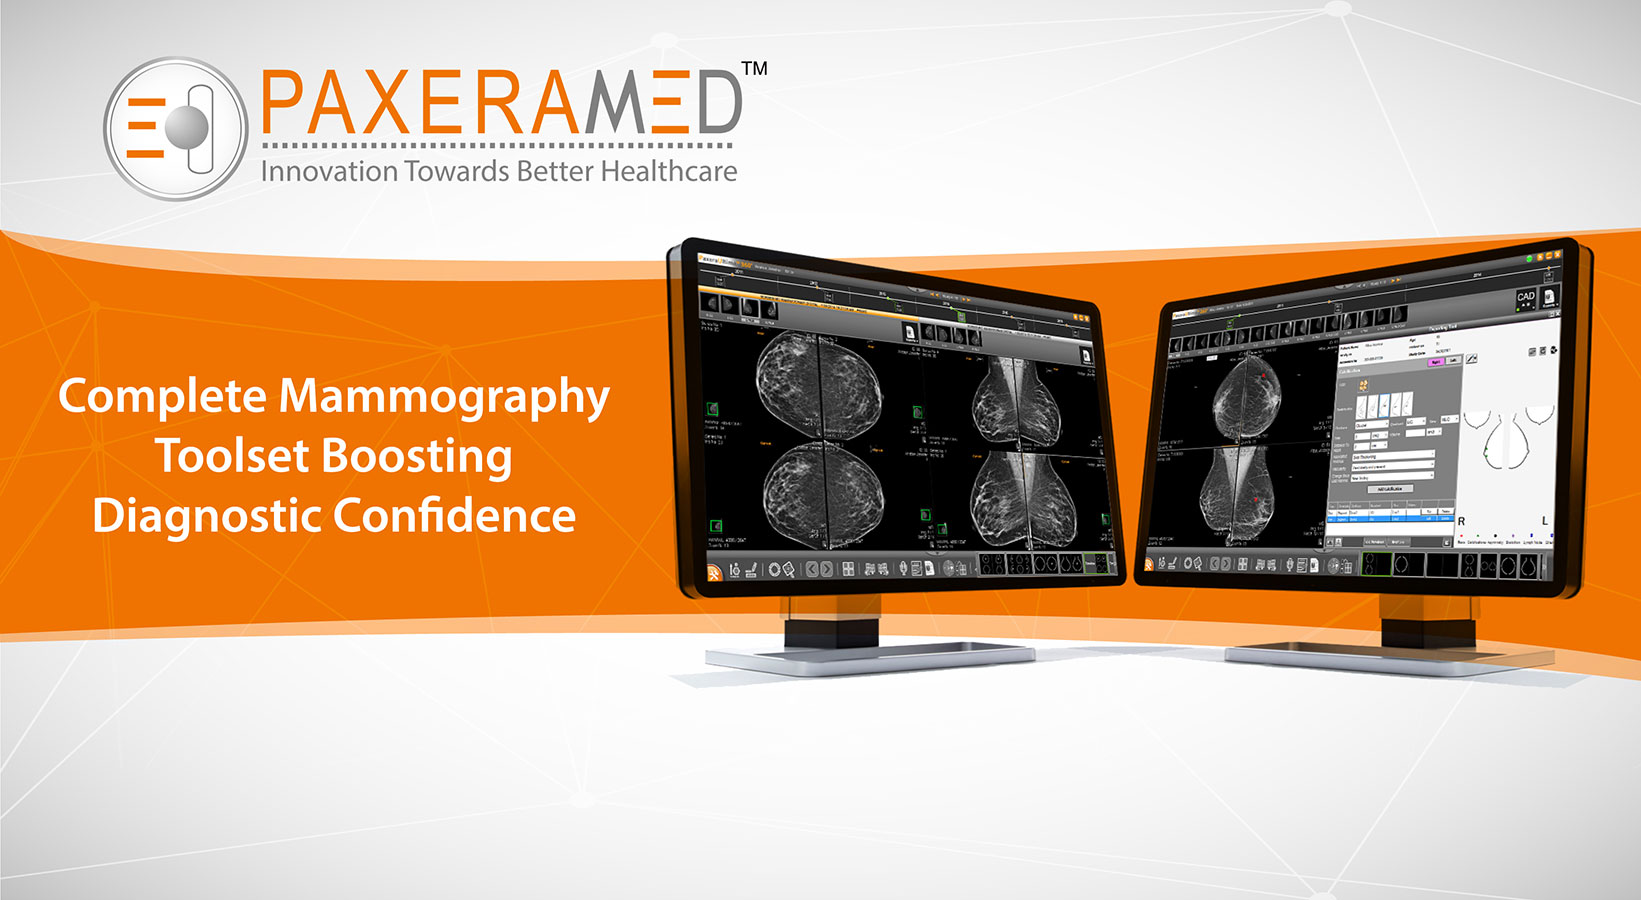 Complete Mammography Toolset Boosting Diagnostic Confidence